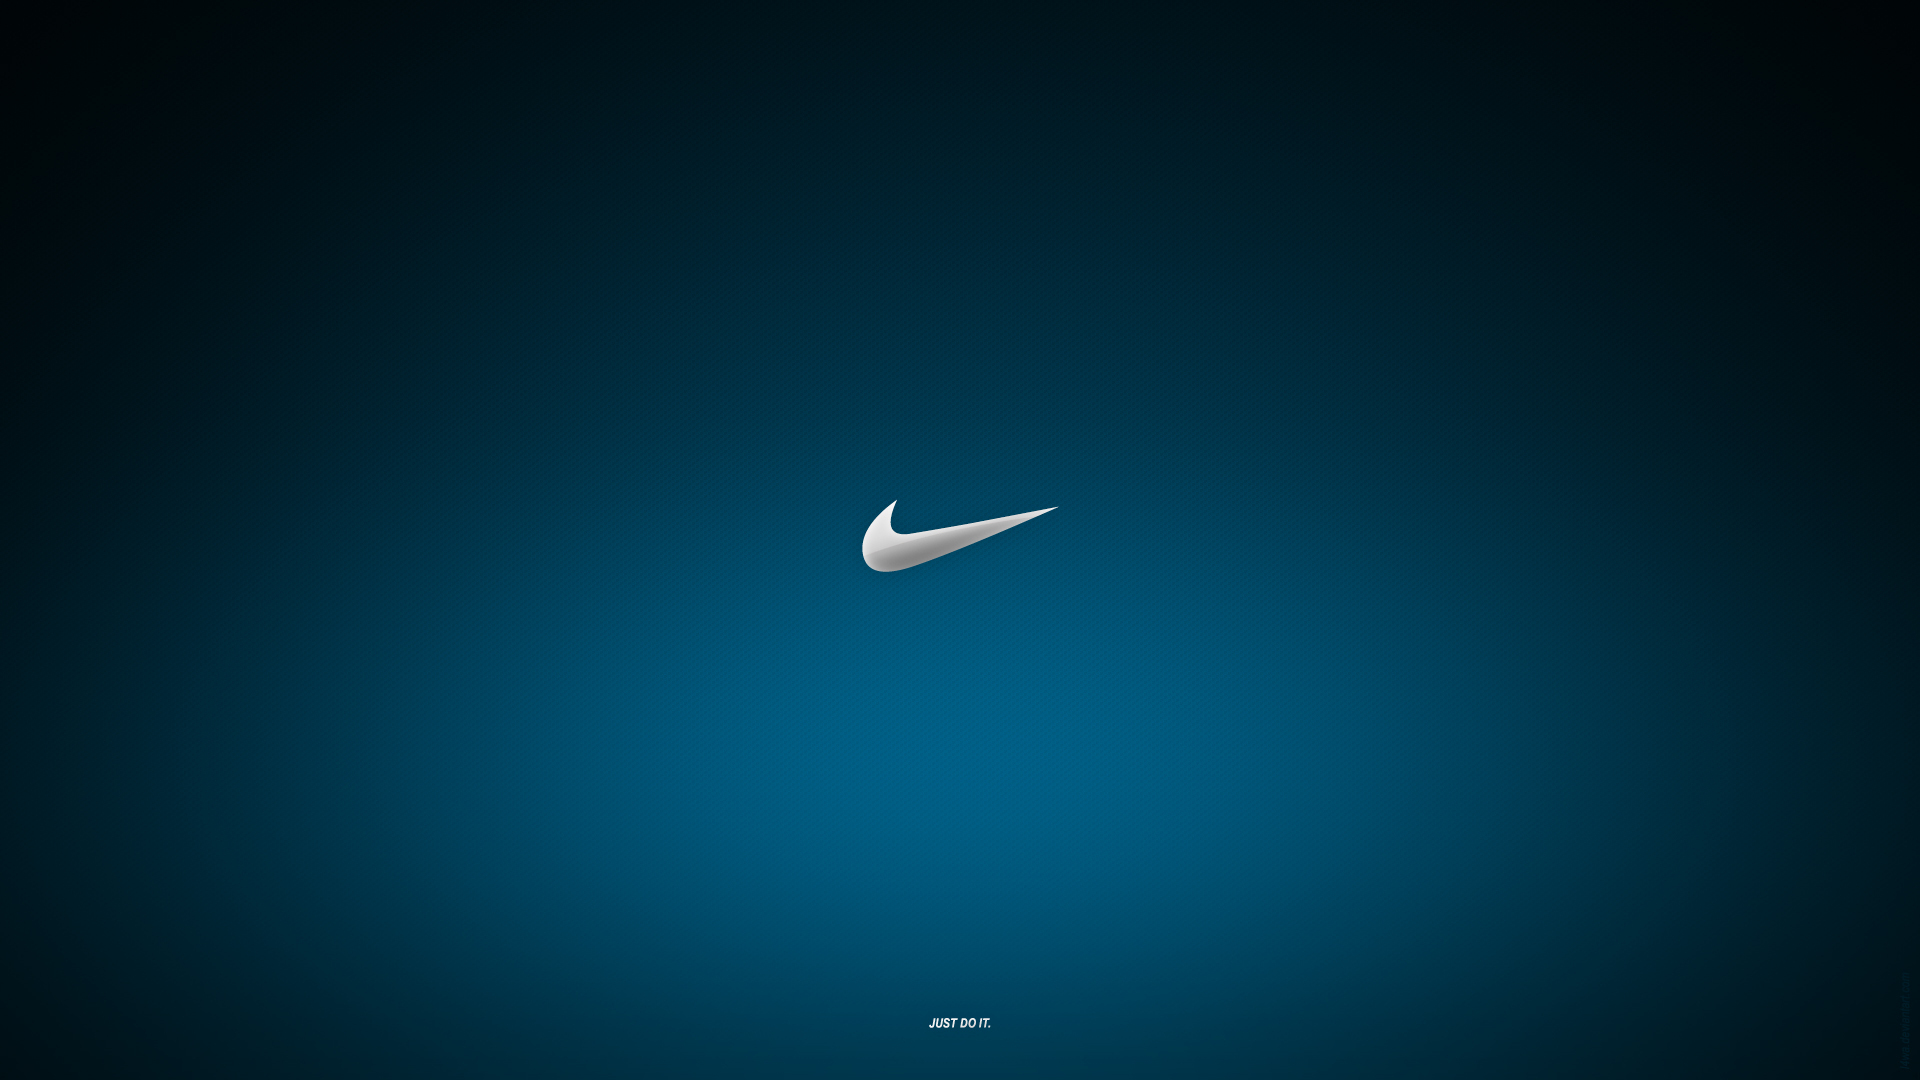 Products - Nike Wallpaper